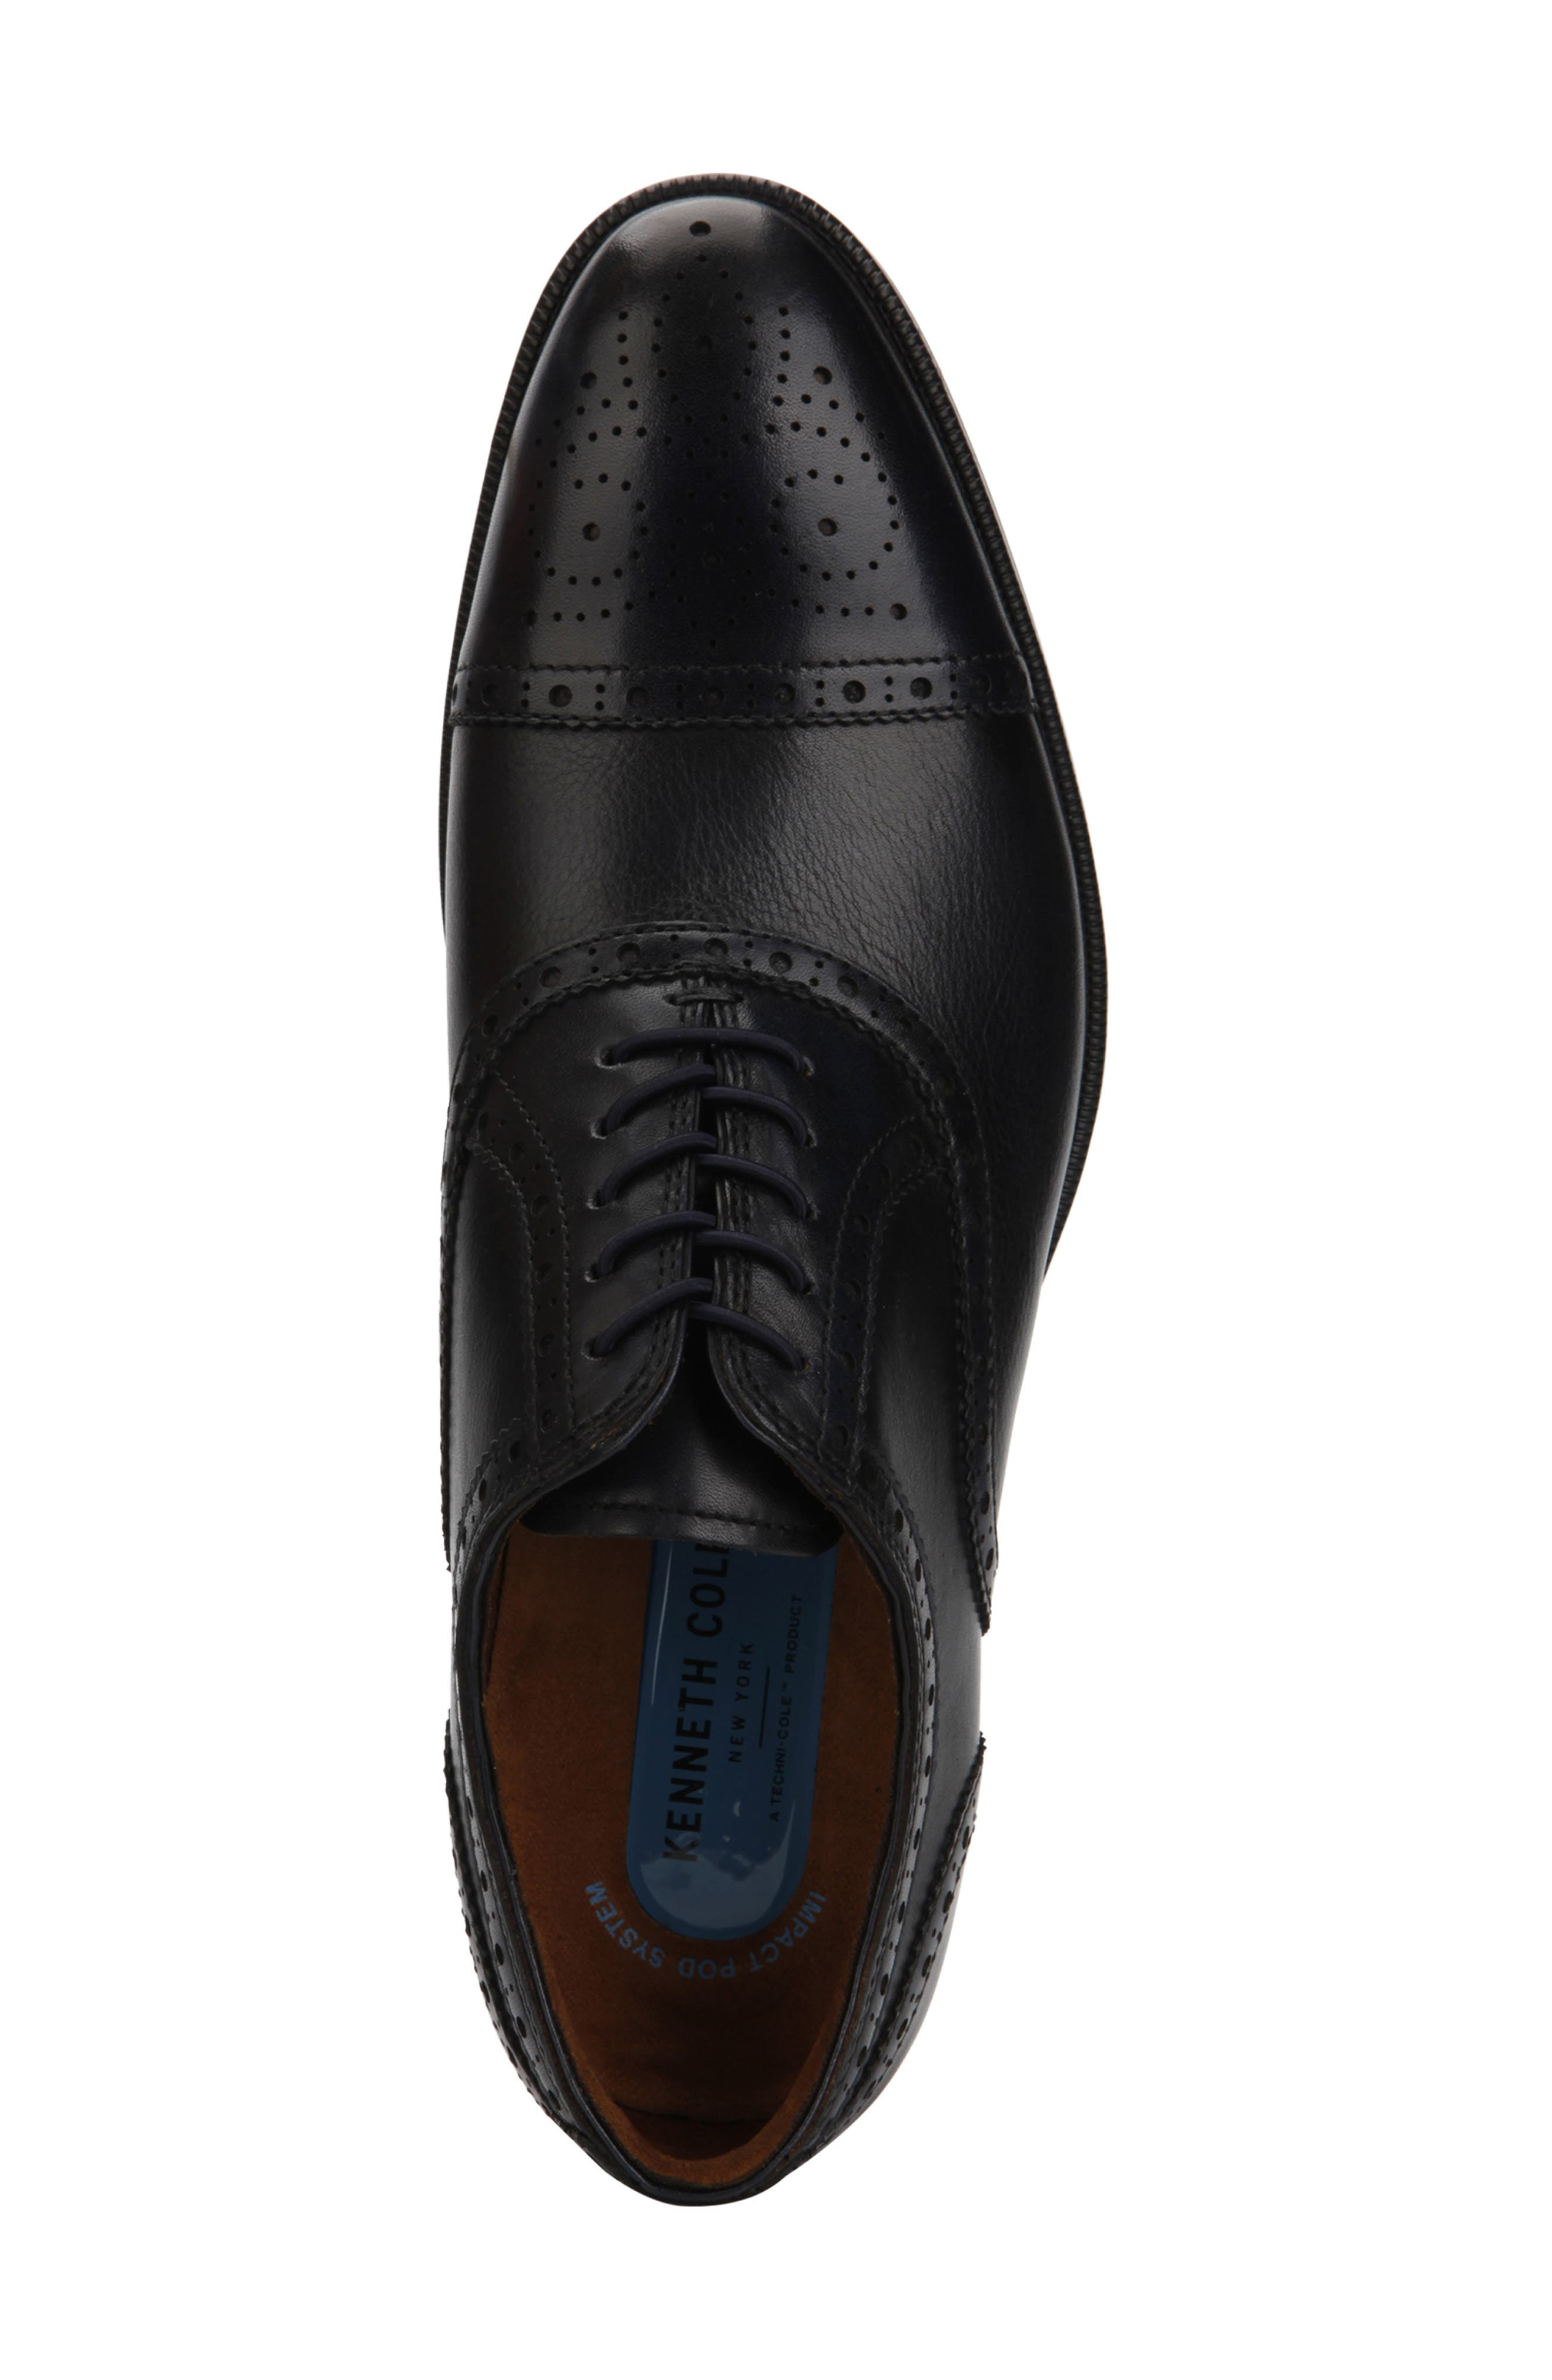 KENNETH COLE NEW YORK, Futurepod Cap Toe Oxford, Alternate thumbnail 3, color, NAVY TUMBLED LEATHER